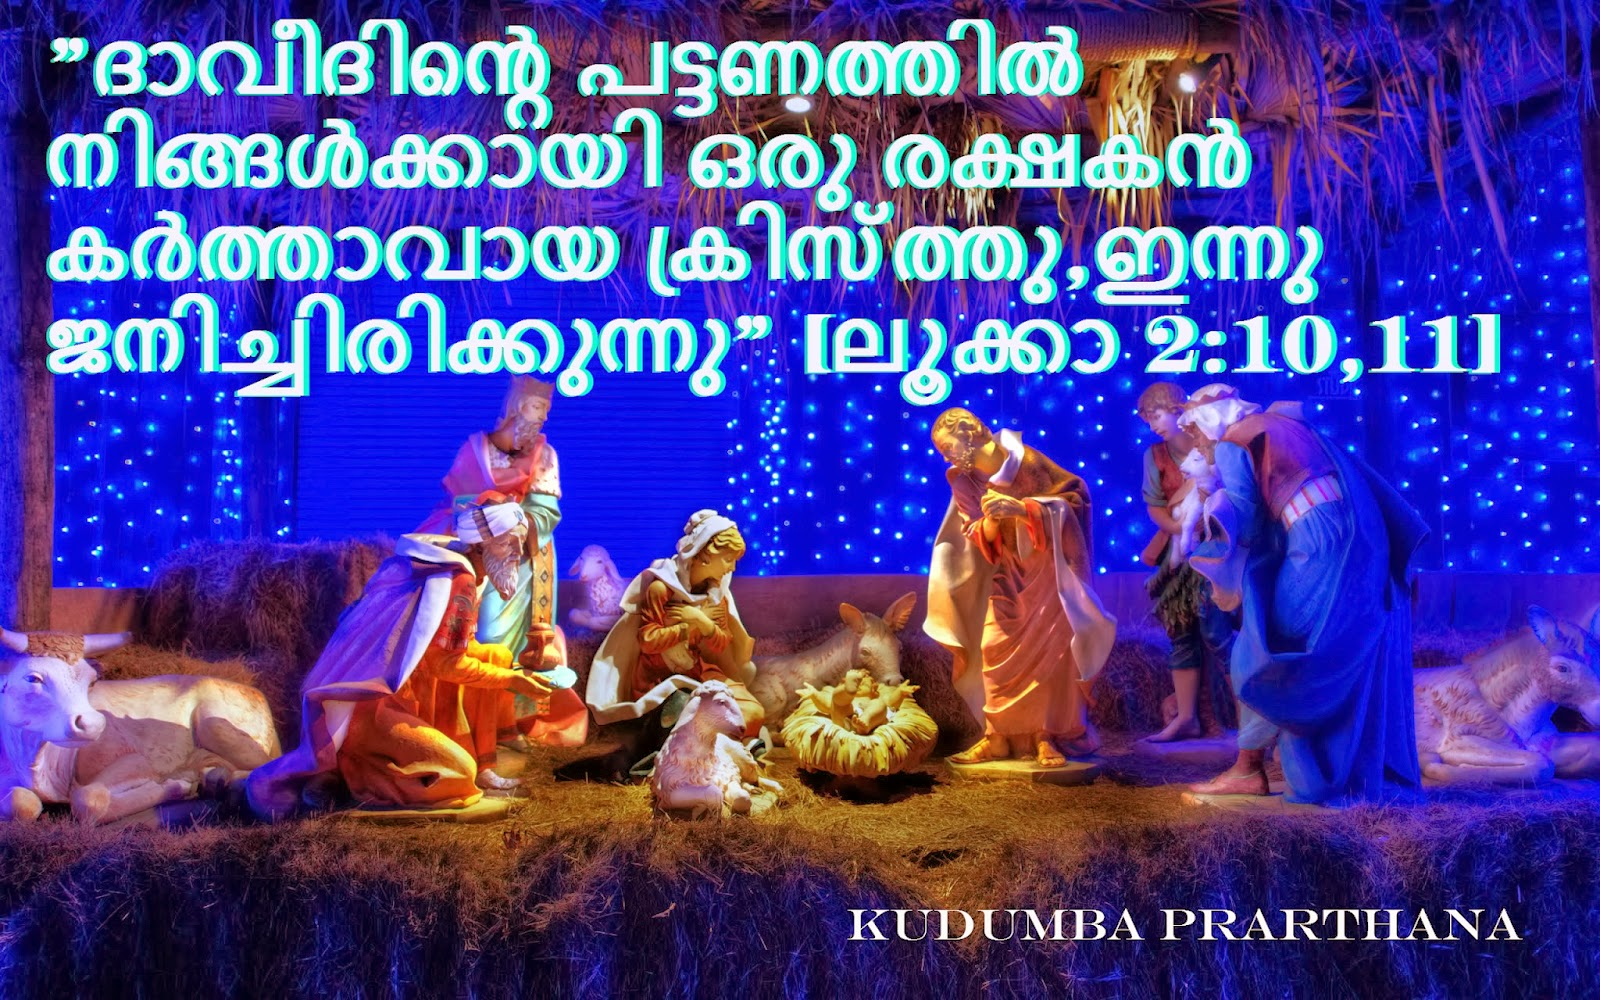 BIBLE VACHANAM CHRISTMAS WALLPAPER MALAYALAM